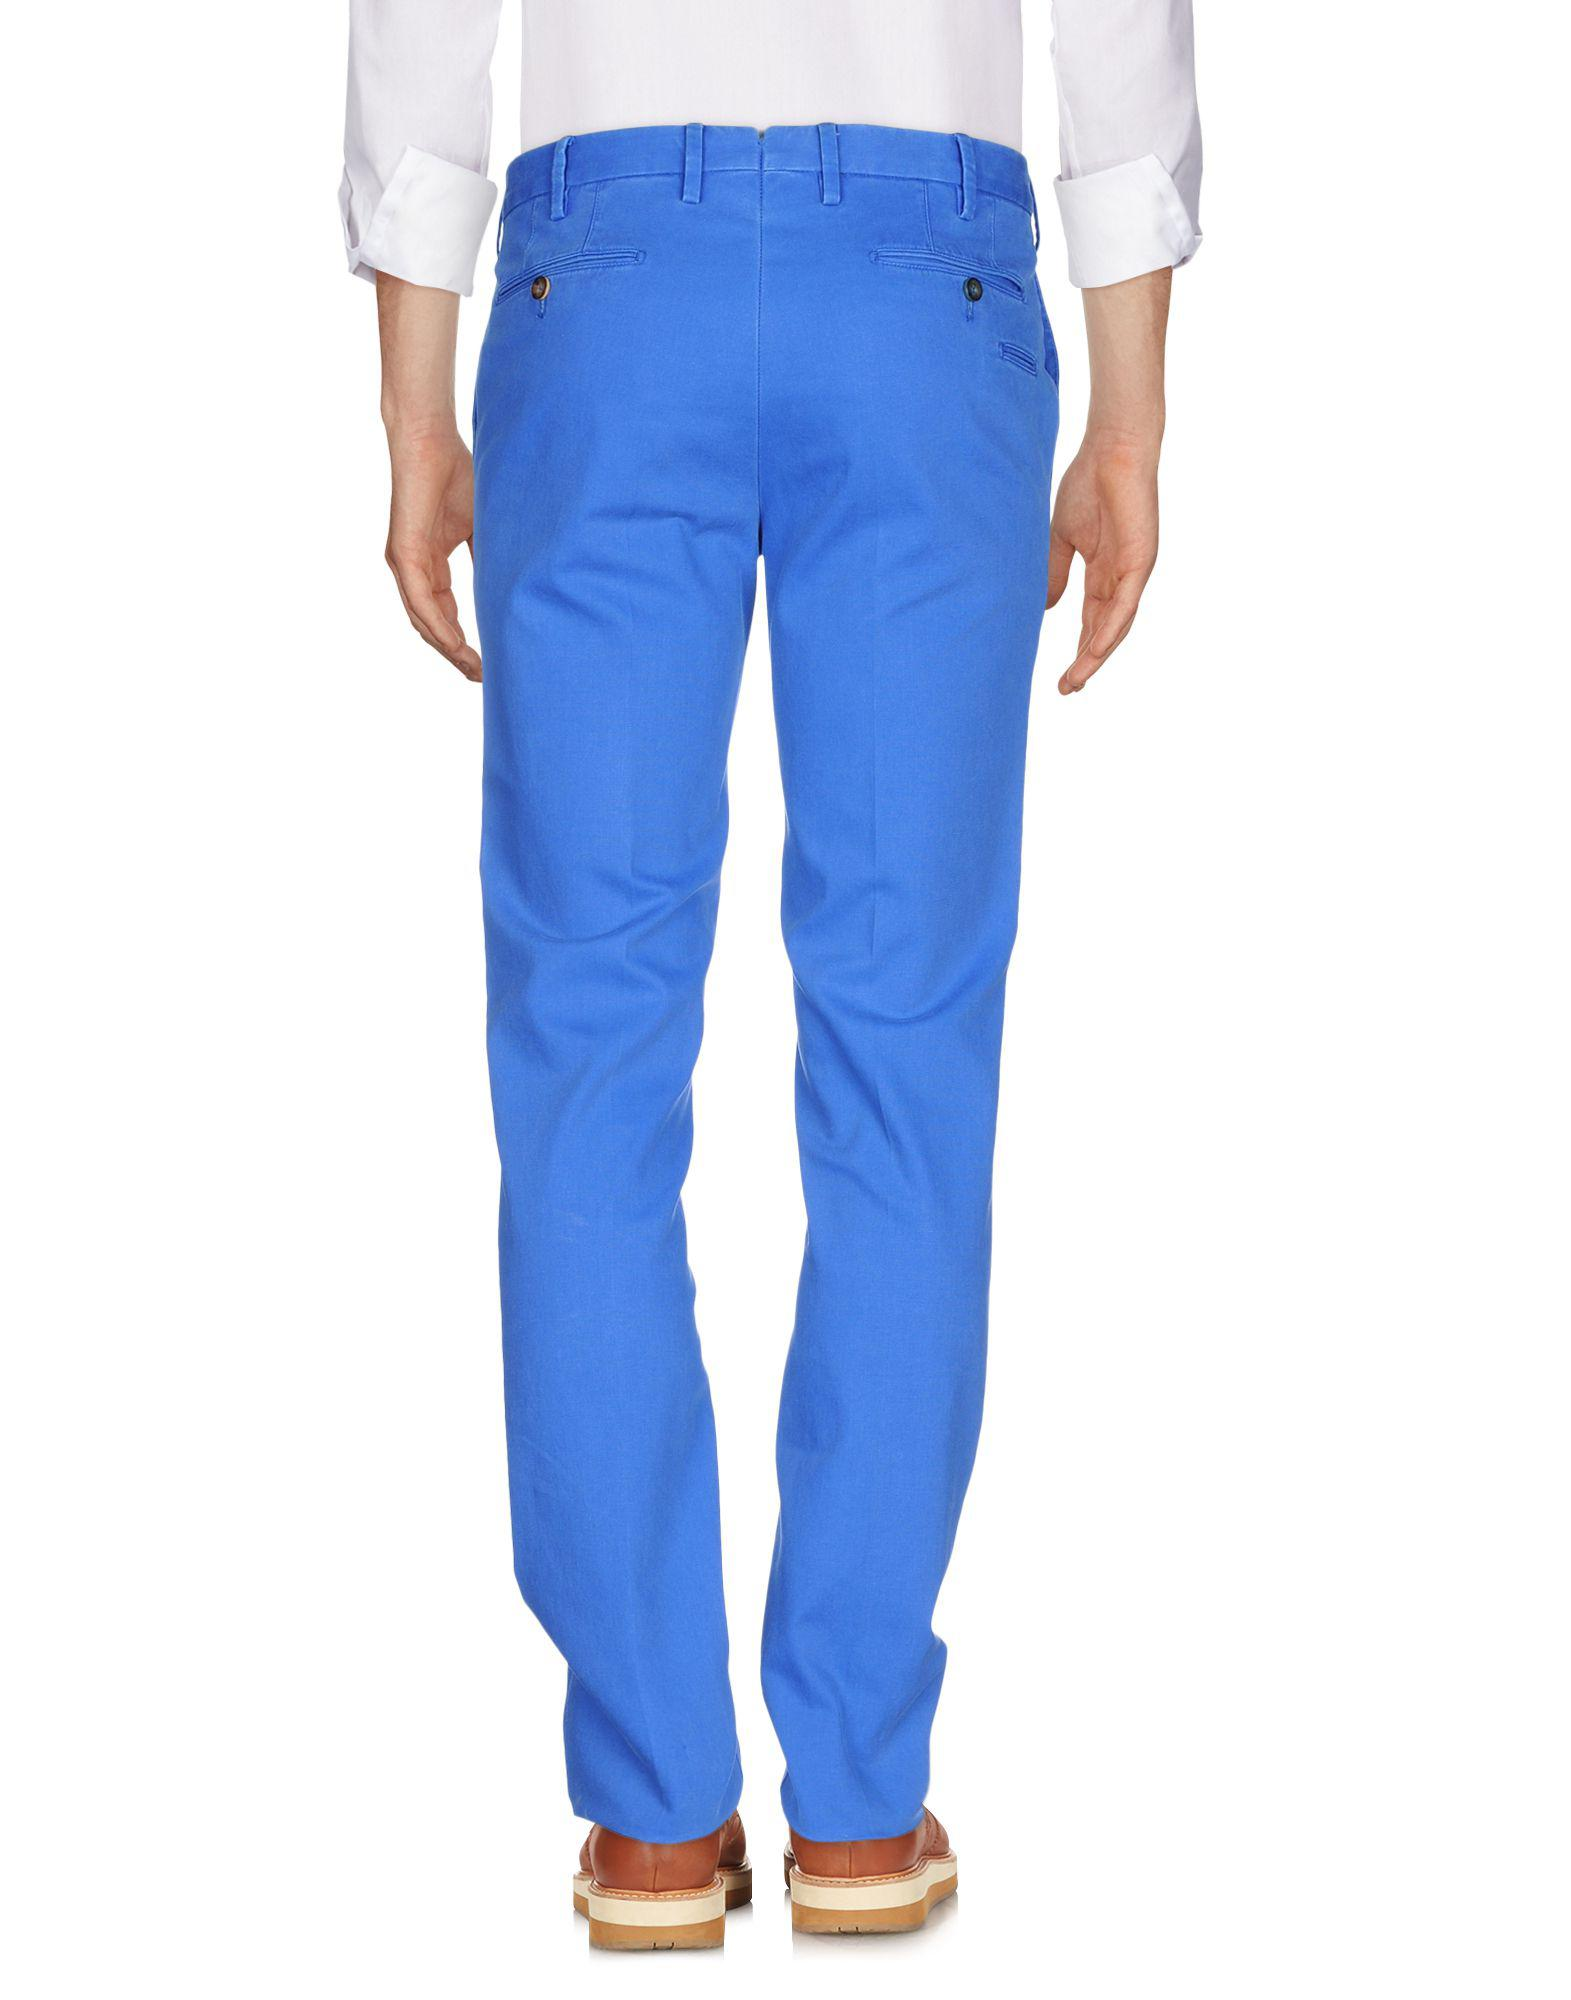 PT Torino Cotton Casual Pants in Bright Blue (Blue) for Men